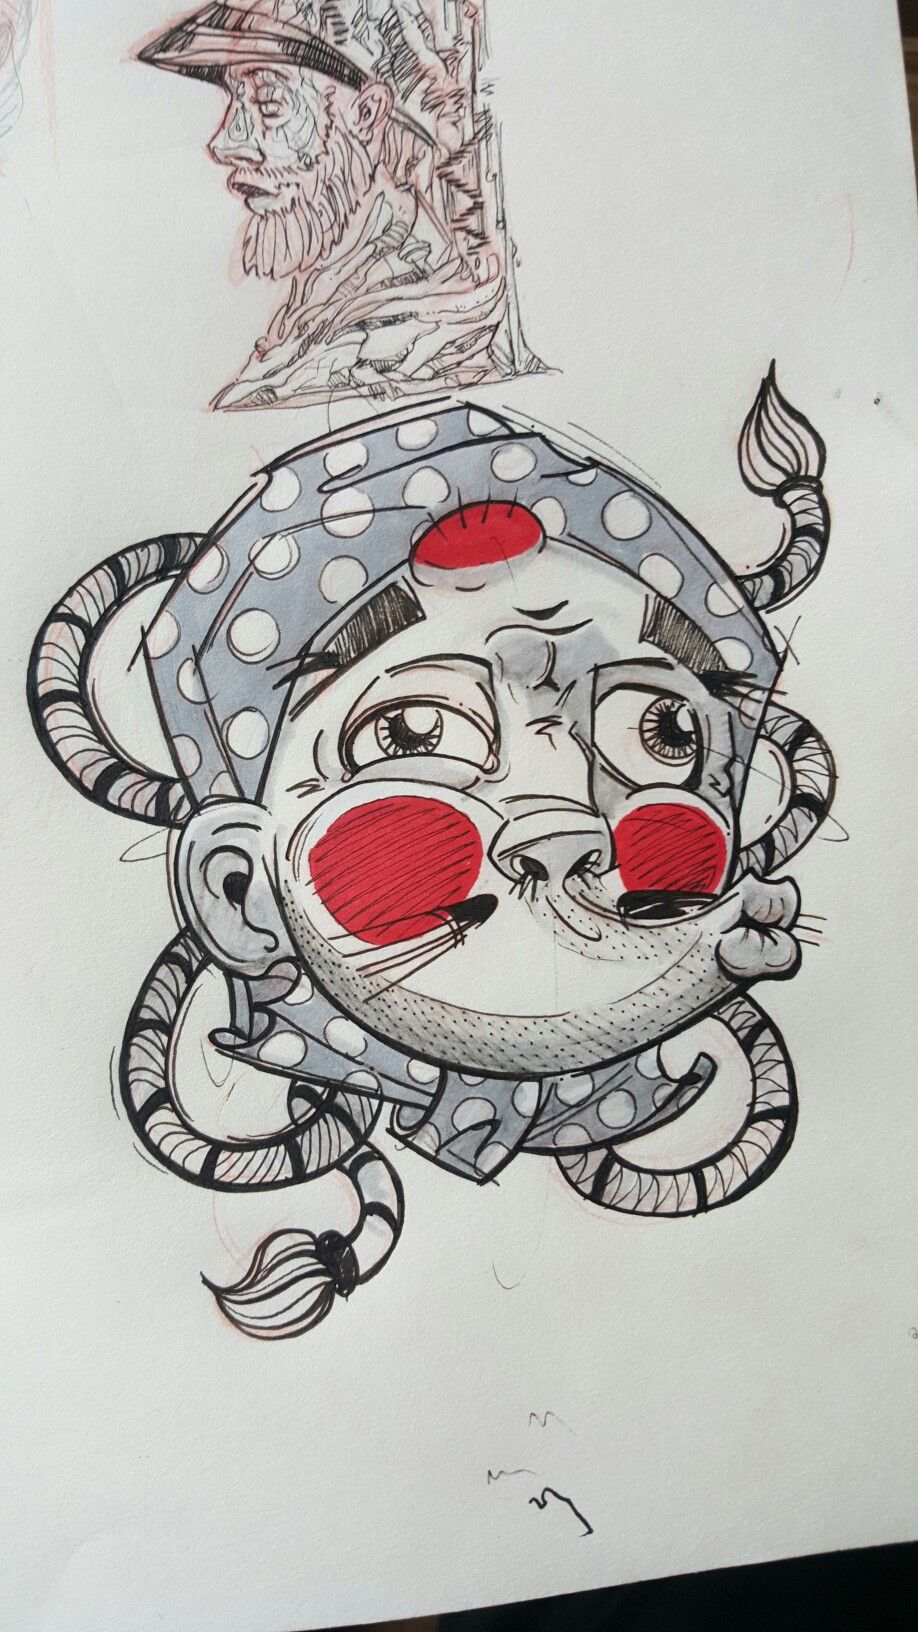 Another amazing sketch of hyottoko mask i cant get enough